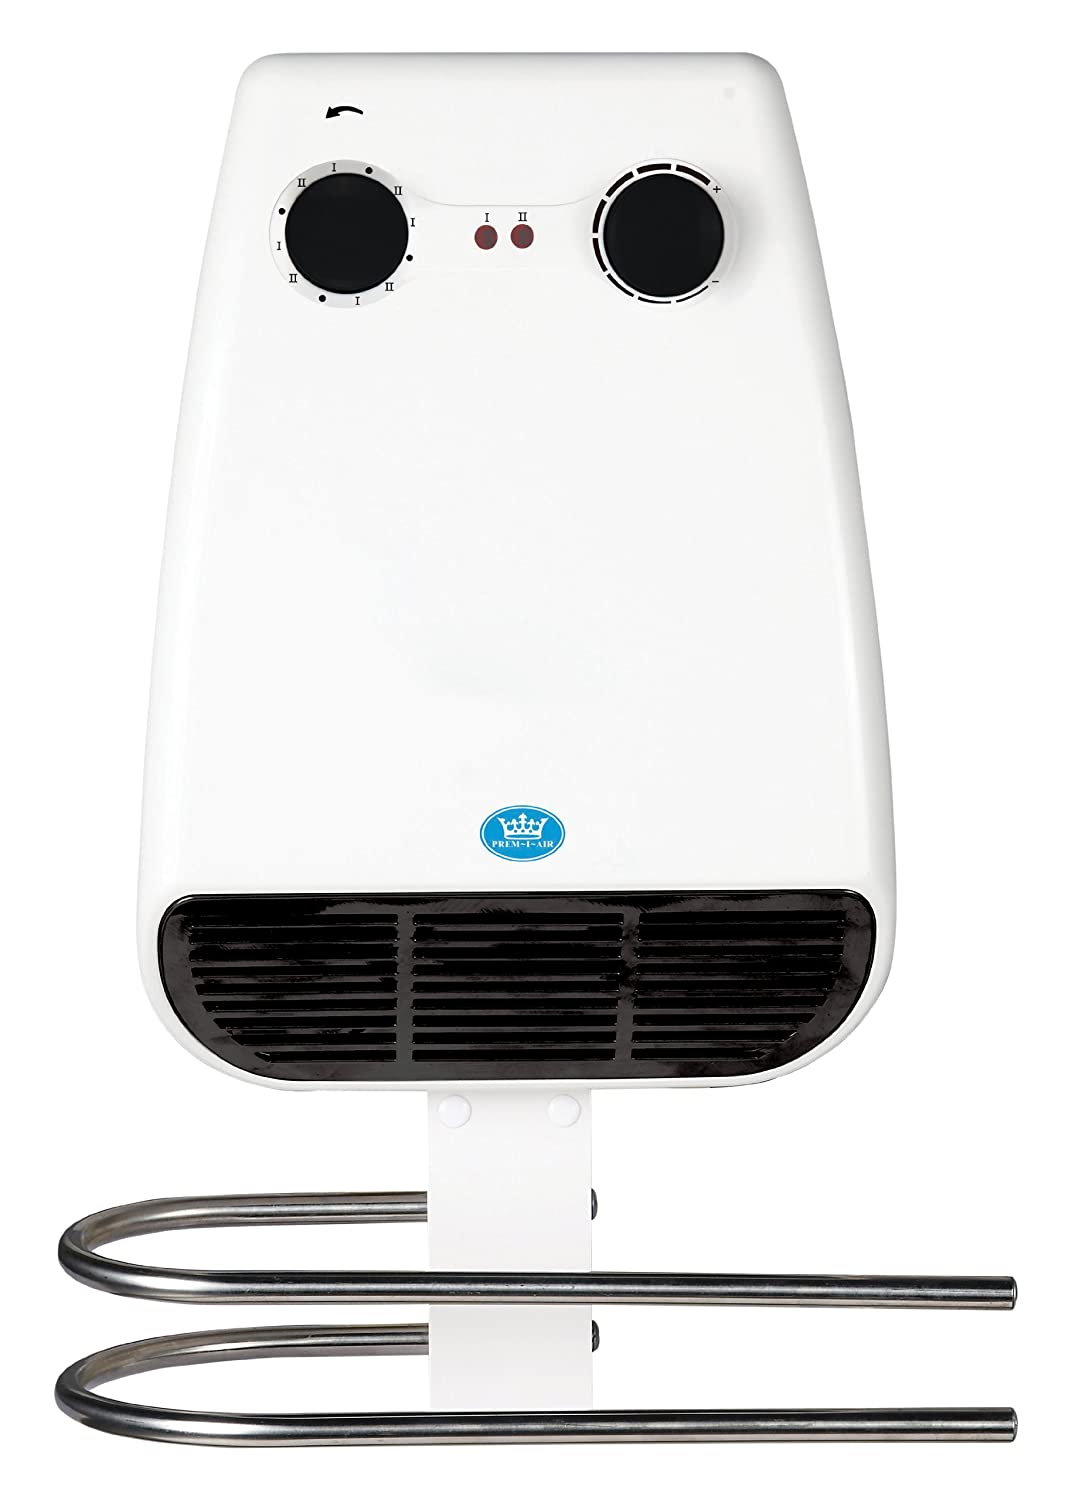 Prem I Air Ptc Down Flow 2 Kw Bathroom Heater With Home Ac Wiring Motbile Electronics